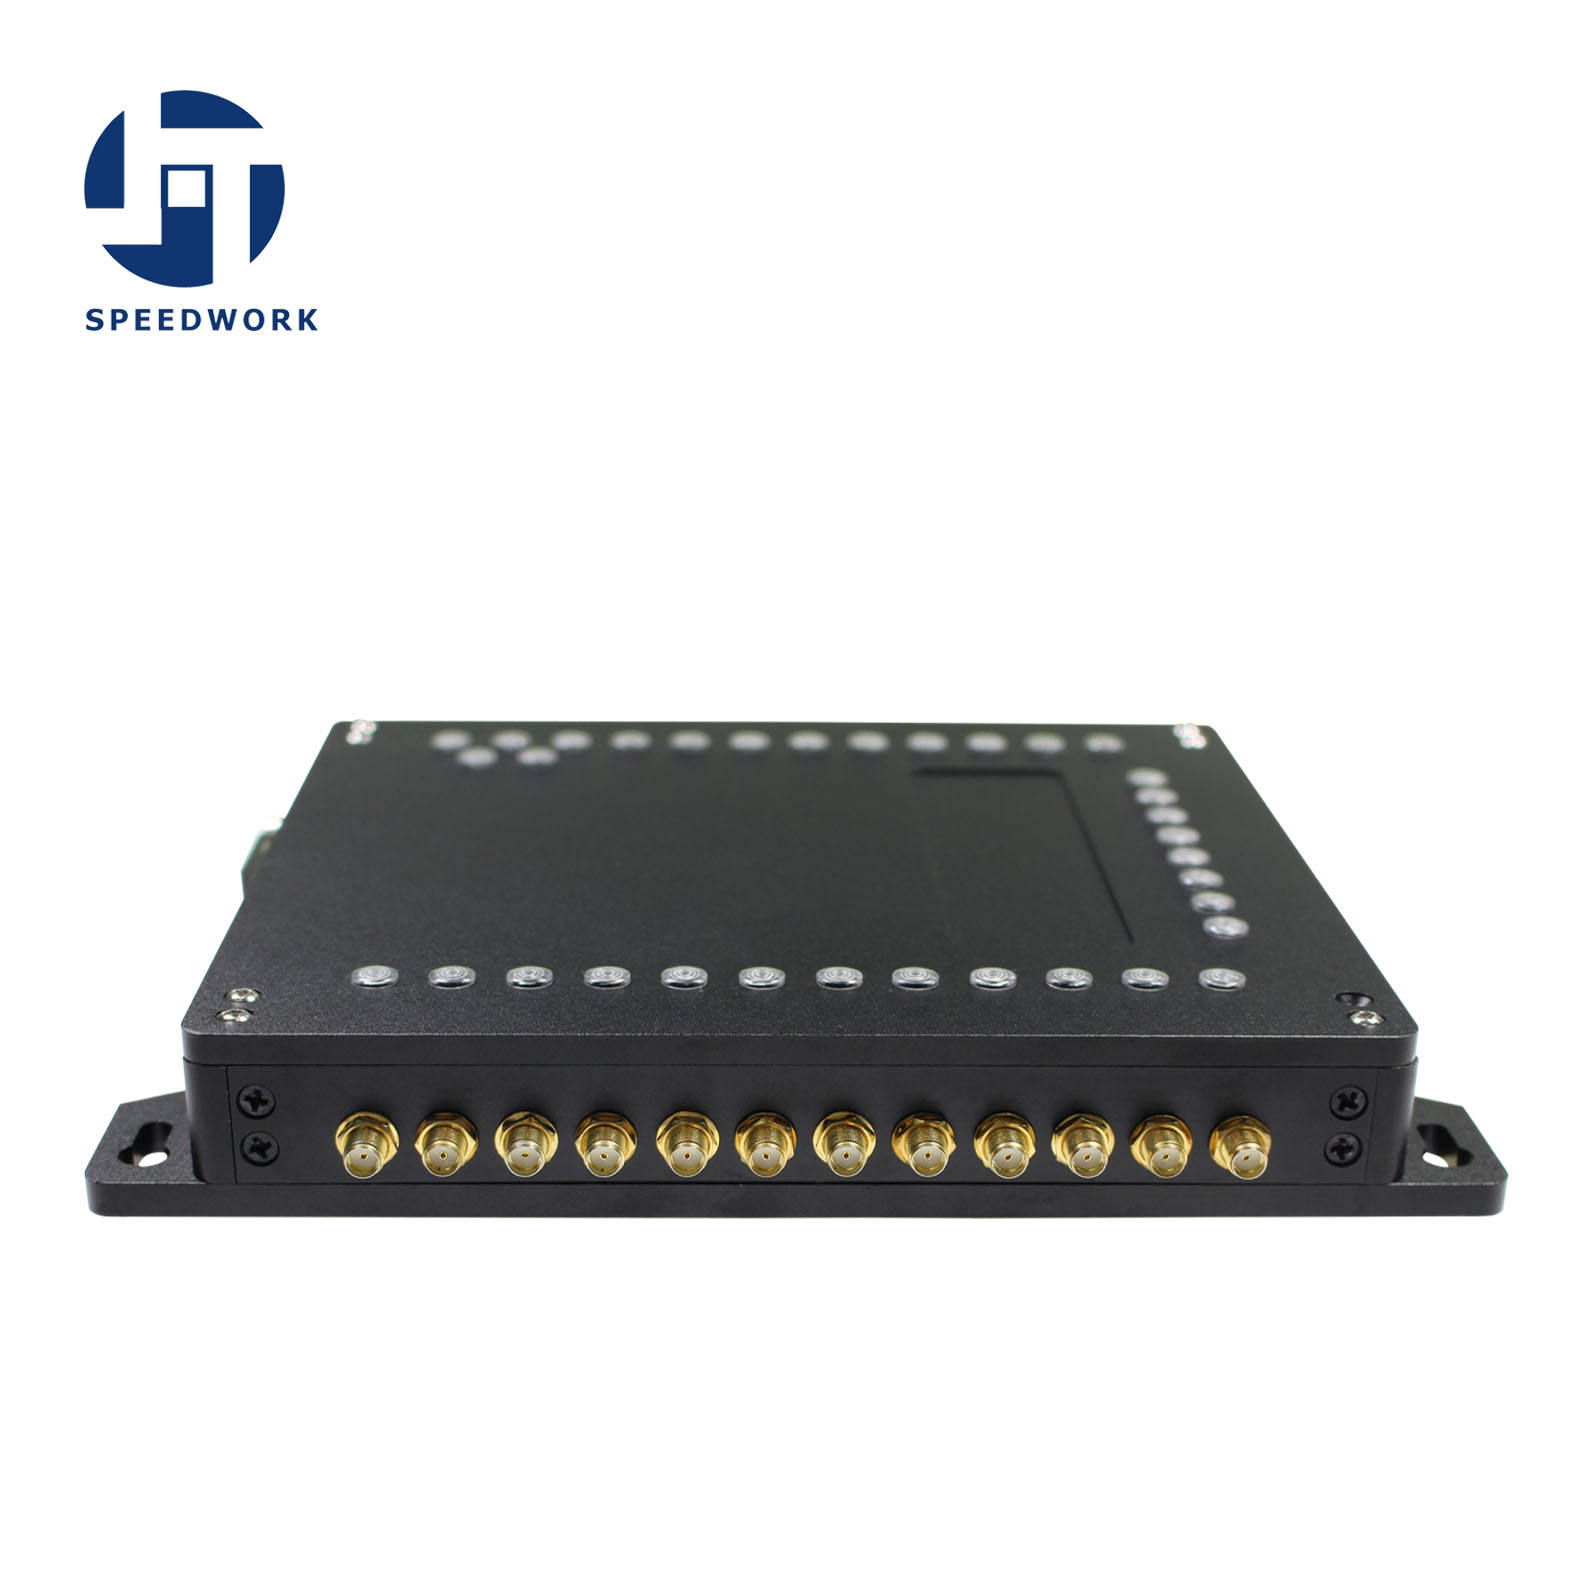 JT-932 860-960MHz LOW PROFILE LOW Overhead 32 พอร์ต UHF RFID Reader SOLUTION